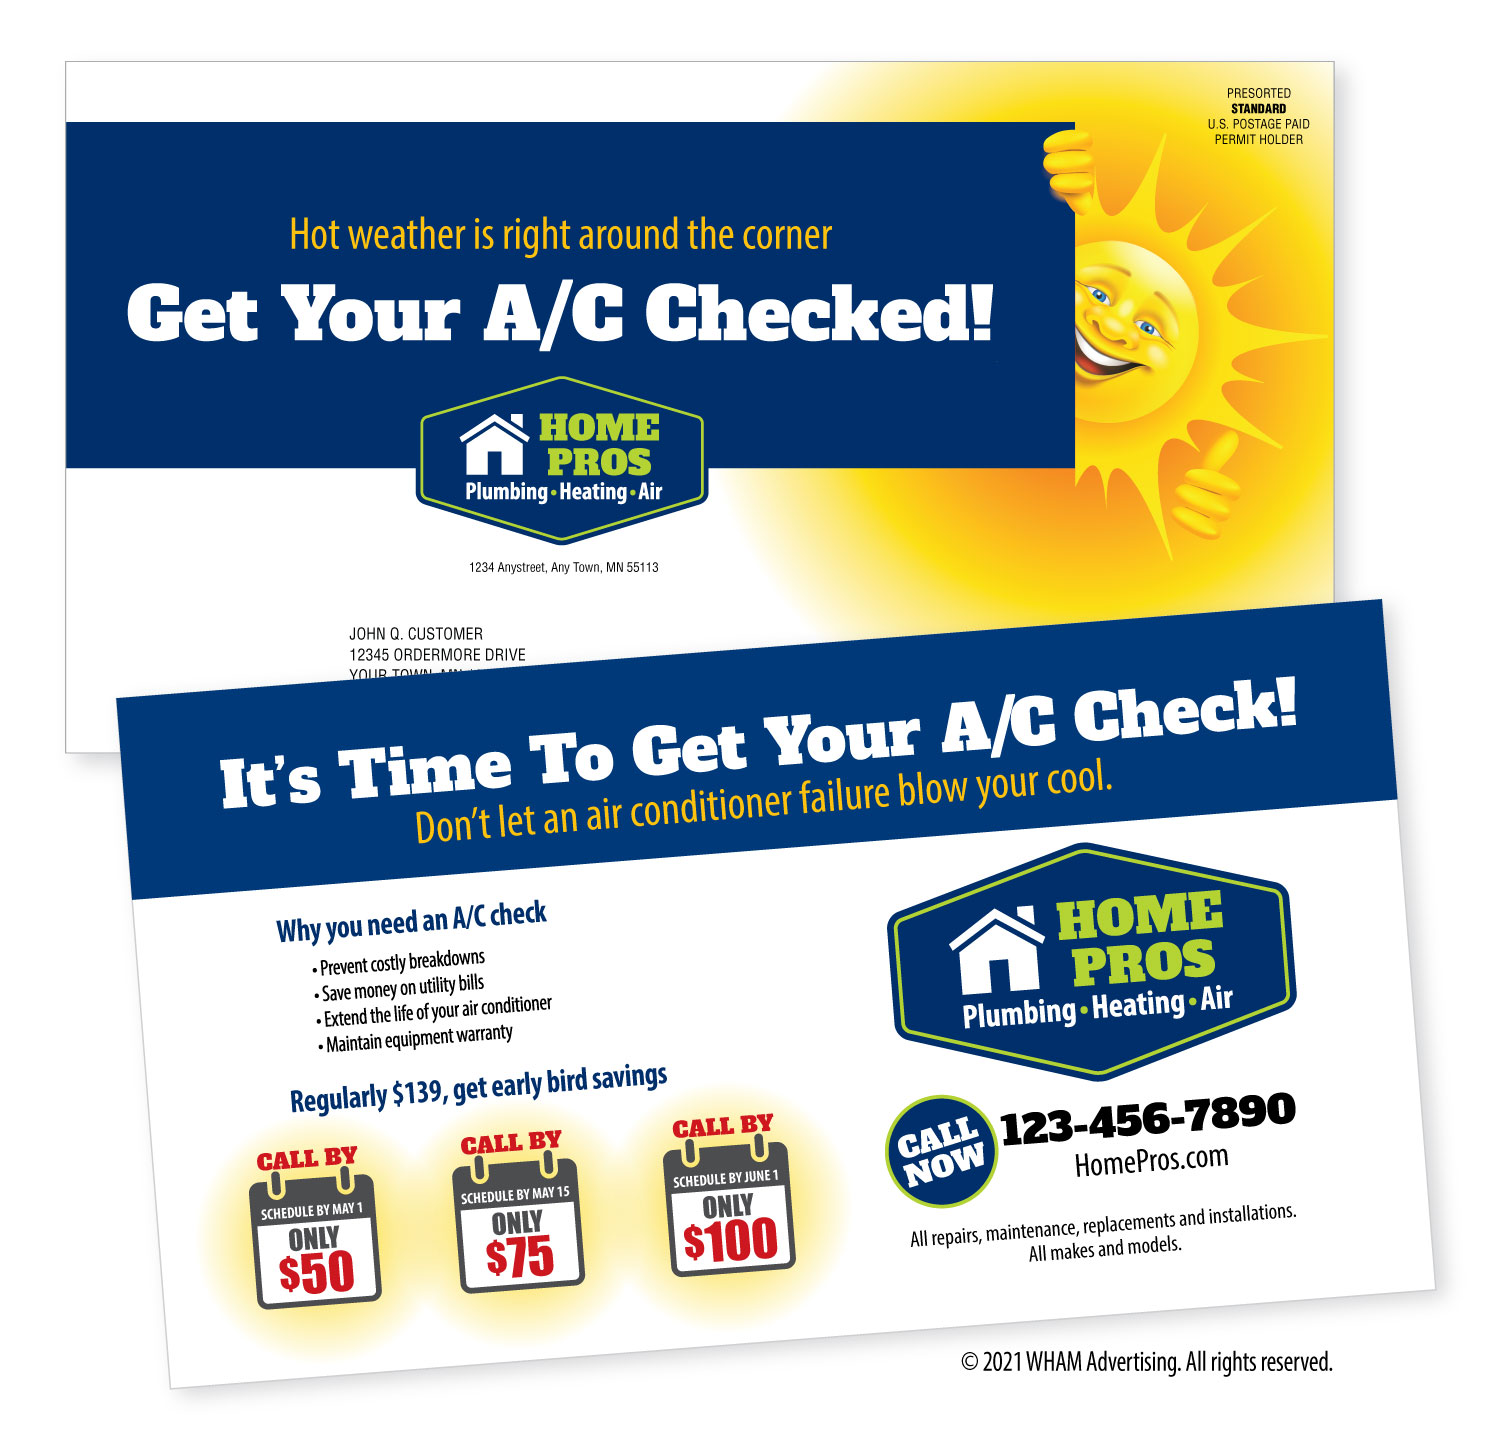 A/C Check, Hot Weather's Right Around The Corner